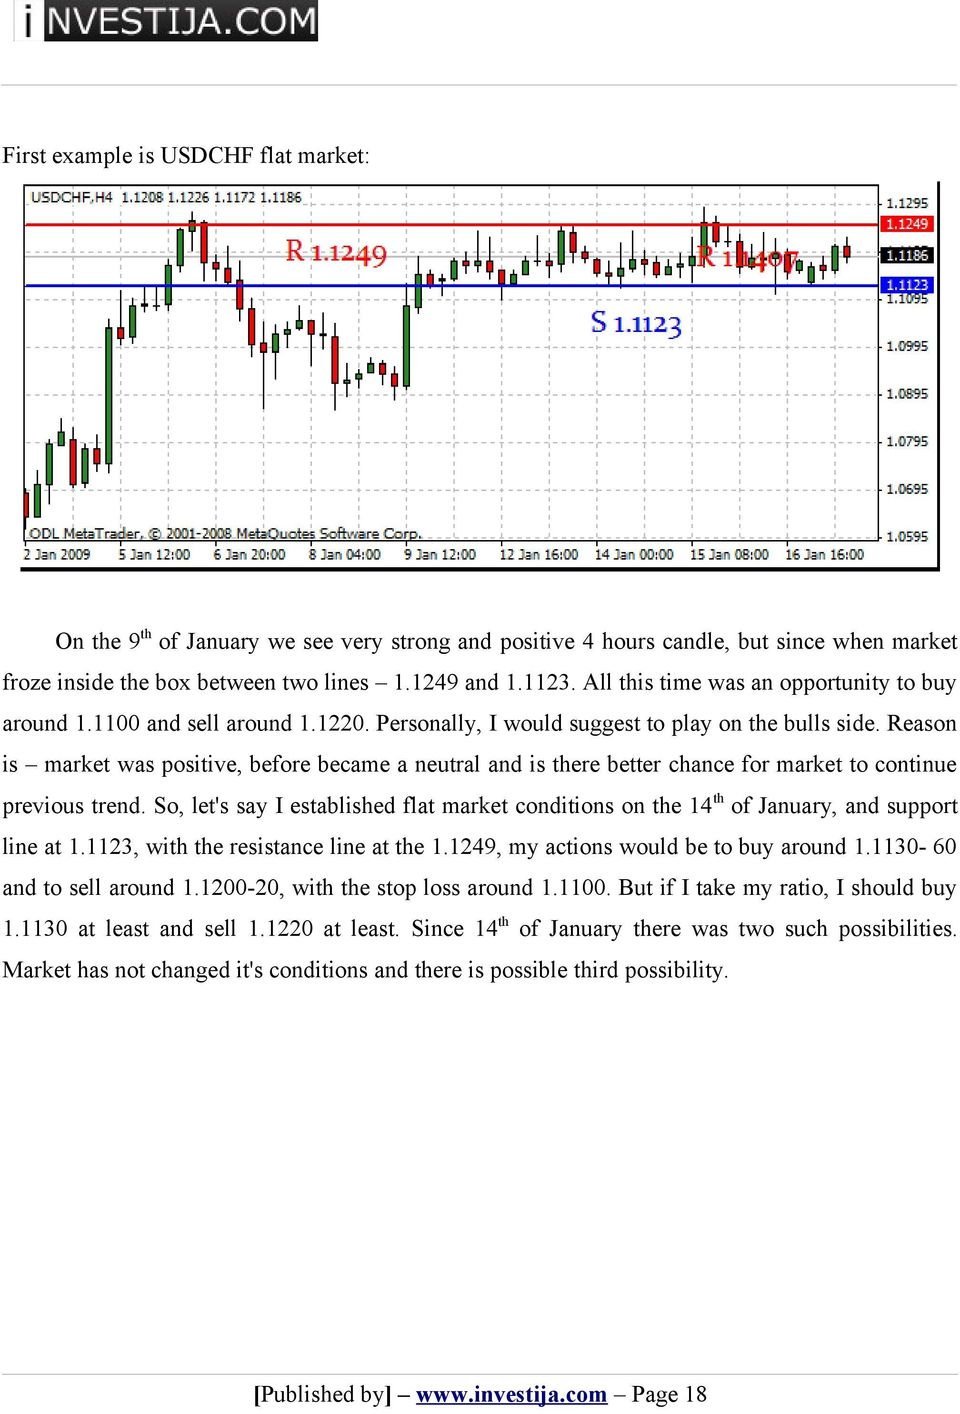 Reason is market was positive, before became a neutral and is there better chance for market to continue previous trend.